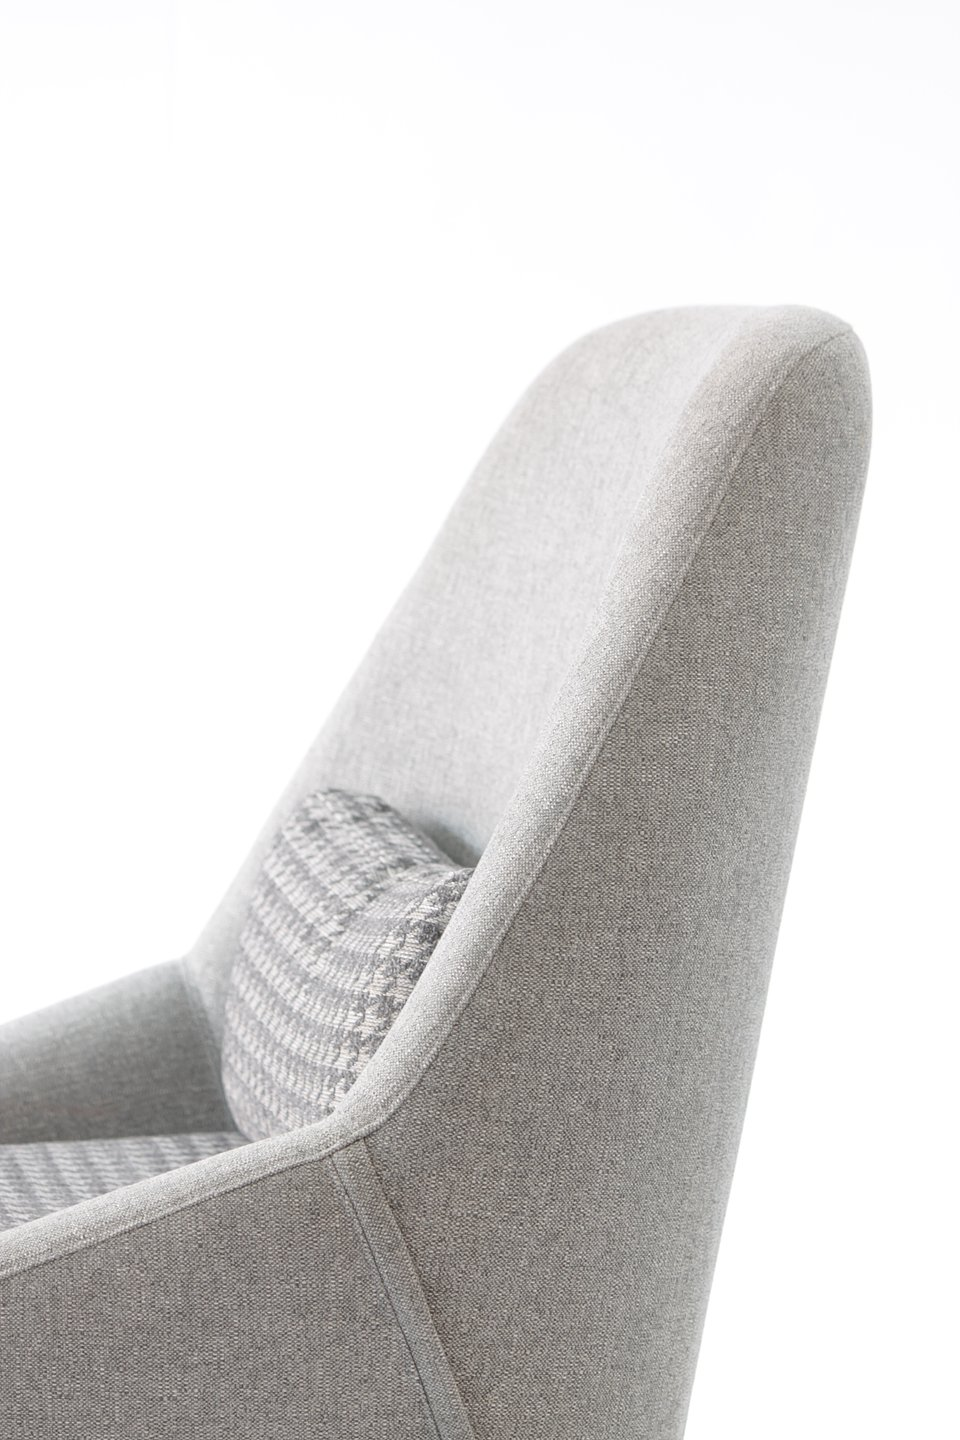 Gull armchair for Koo International (8).JPG